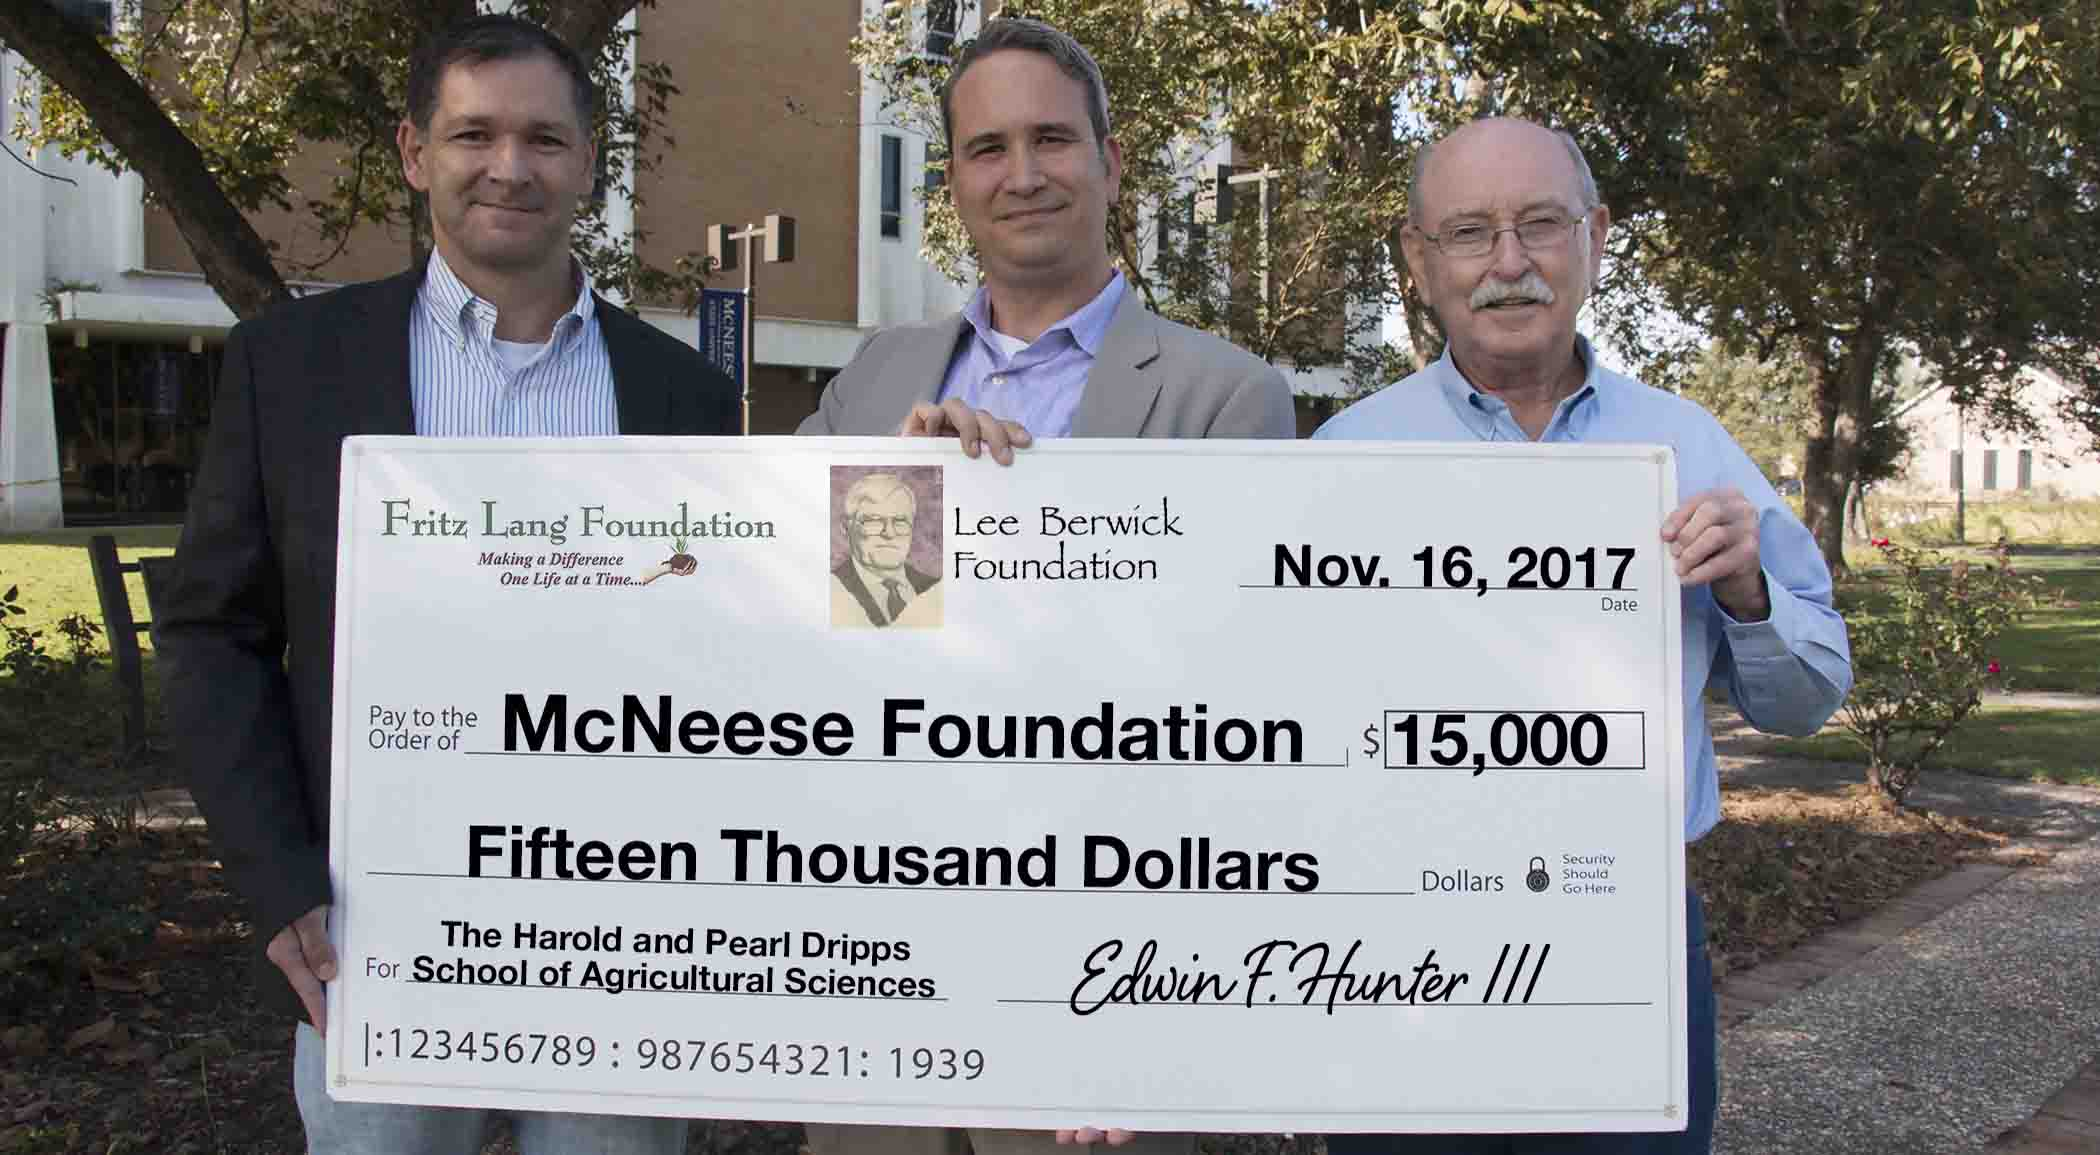 Dr. Chip LeMieux and Dwight Bertrand of McNeese accept a check from Edwin F. Hunter III of The Fritz Lang and Lee Berwick Foundations.